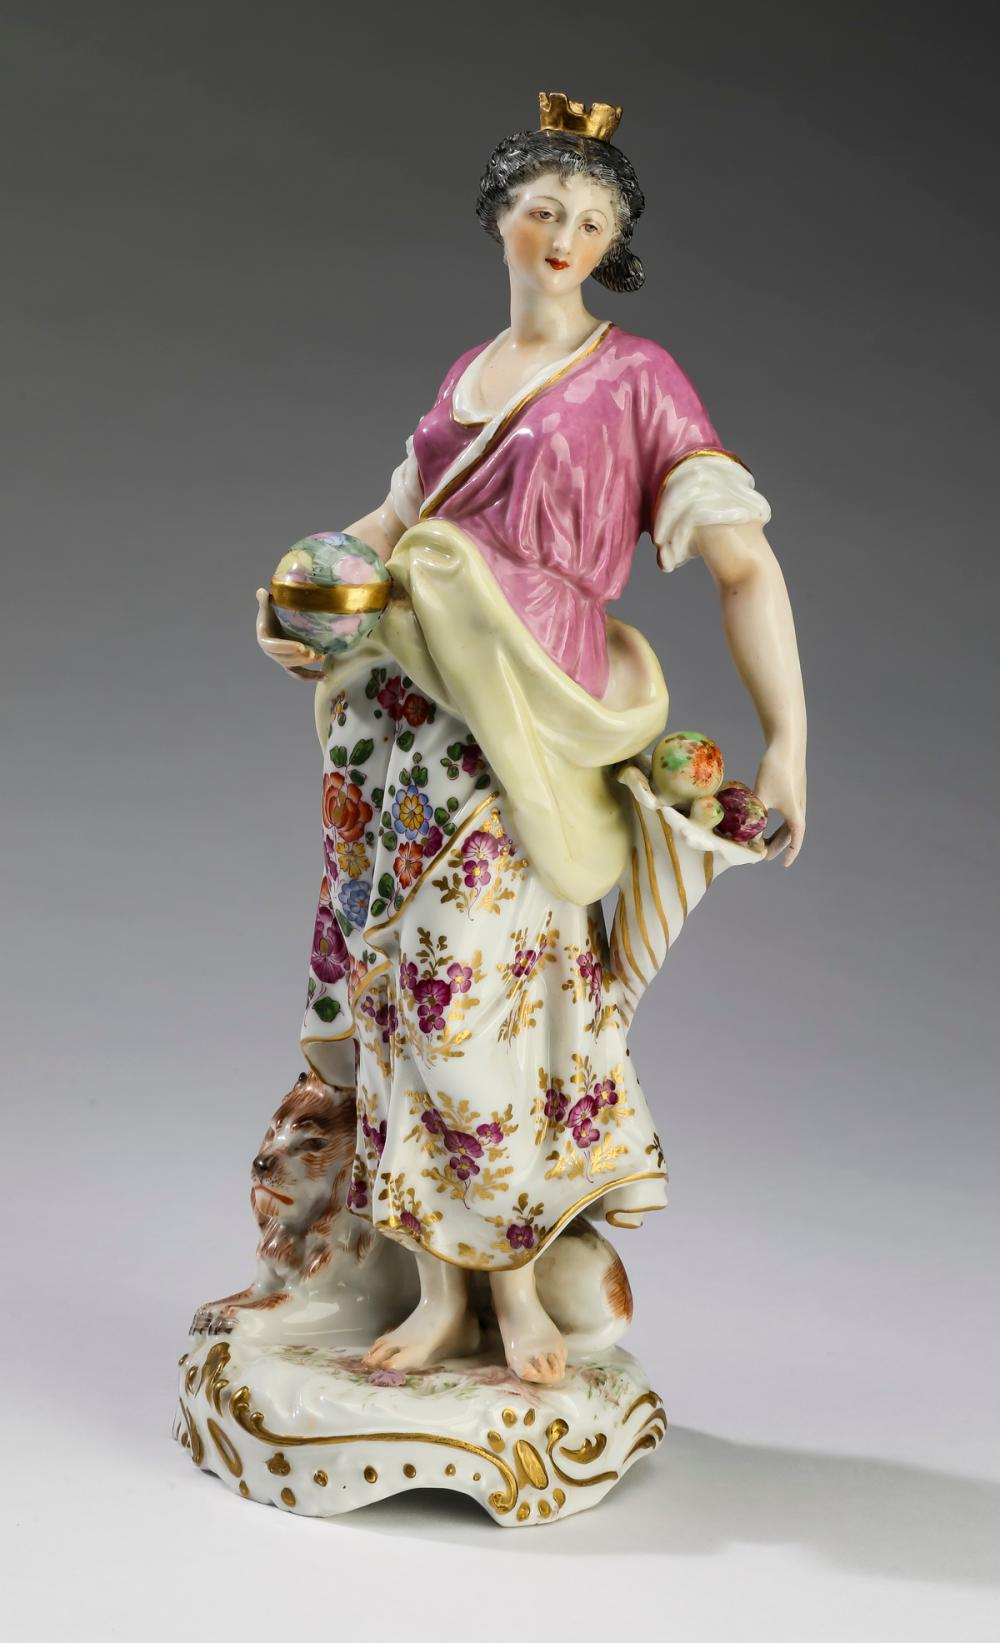 Porcelain figure of Cybele by Samson and Co., ca 1940